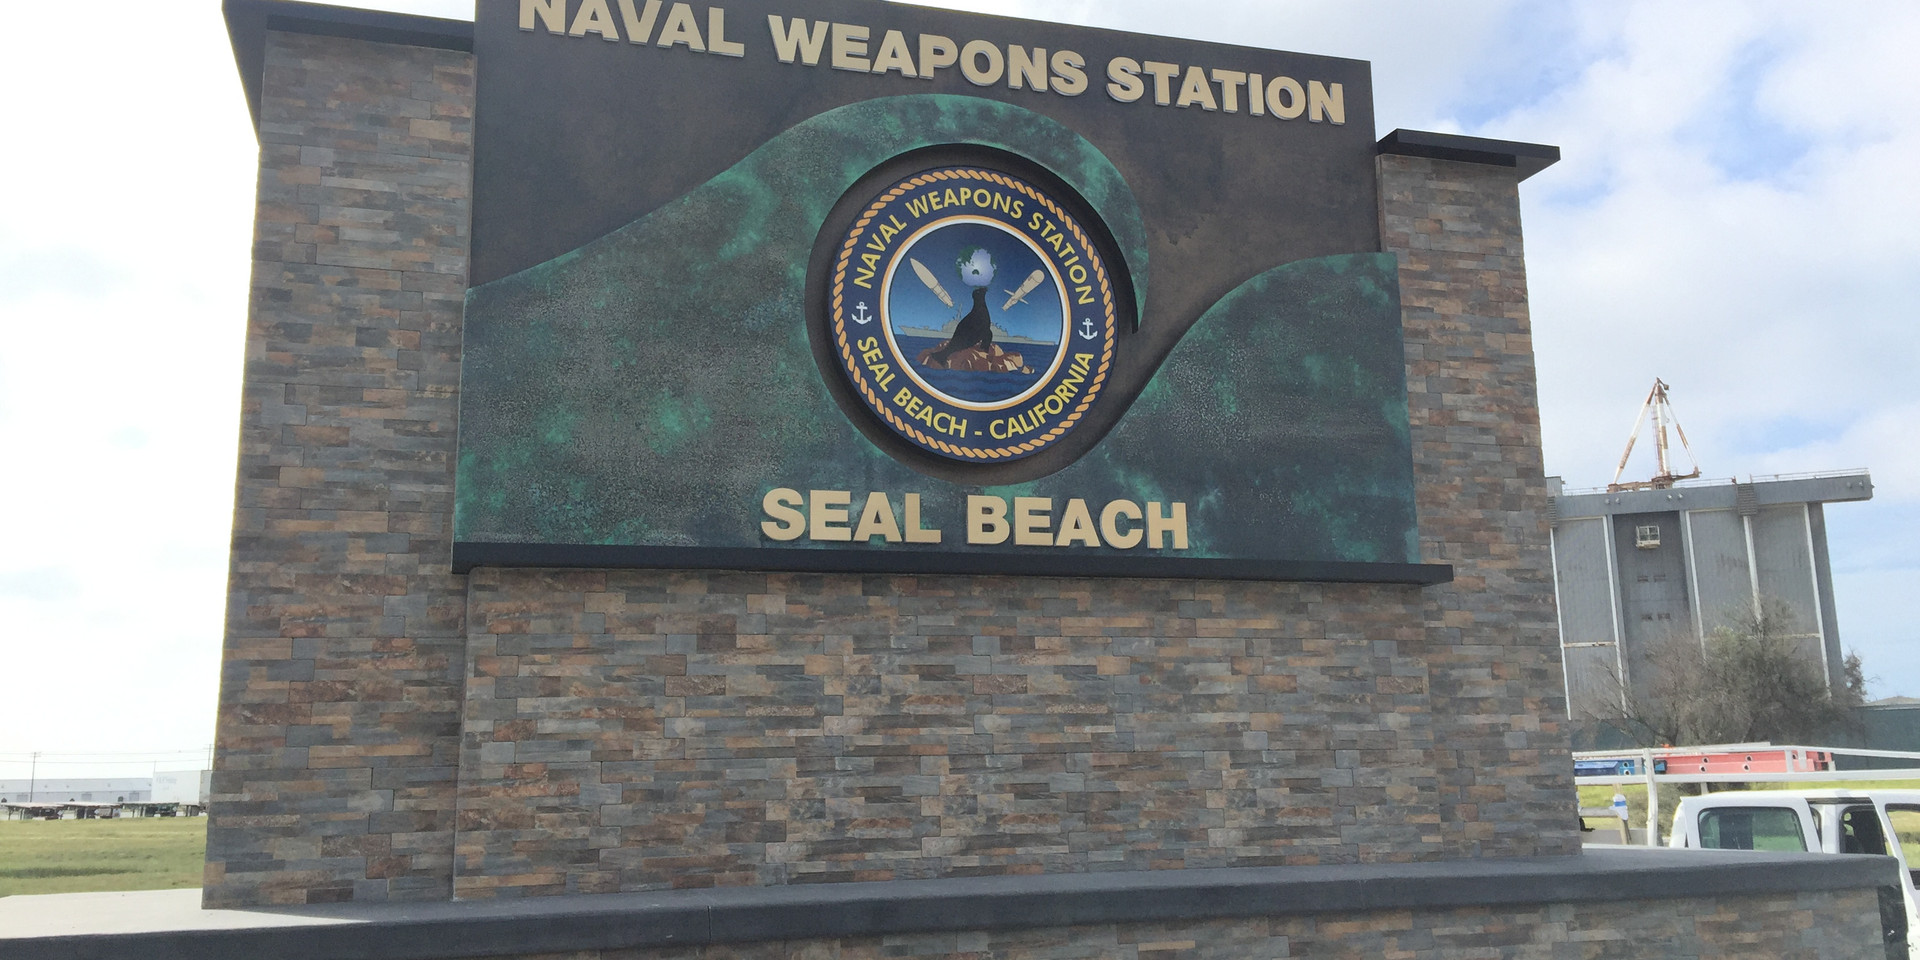 Naval Weapon Station